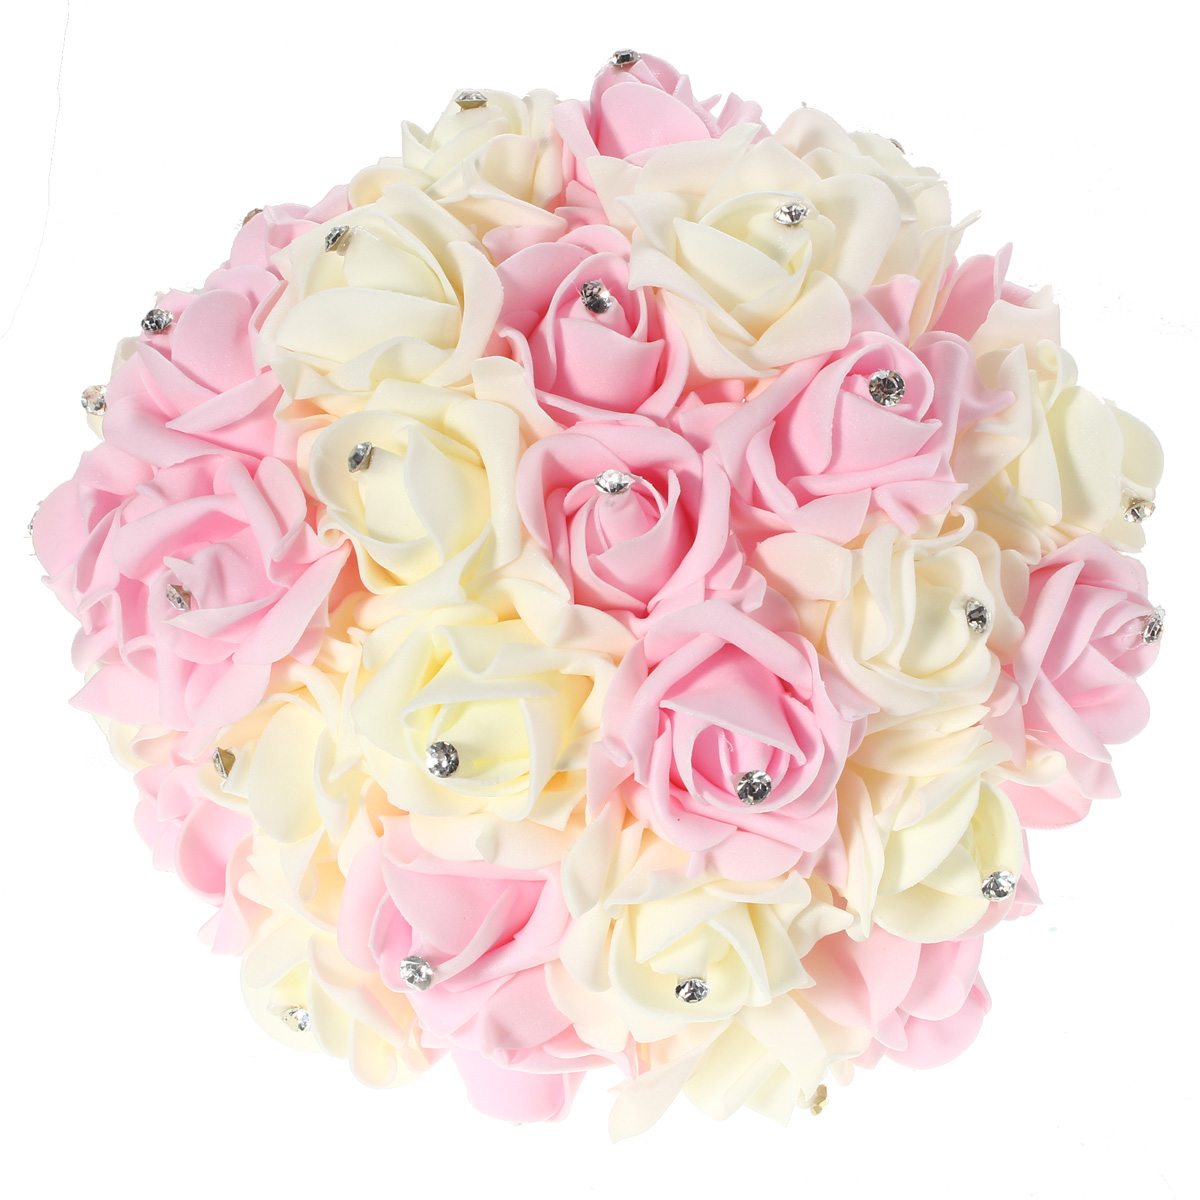 30 Heads Colourfast Foam Roses Crystal Artificial Flower Home Wedding Bride Bouquet Party Decoration